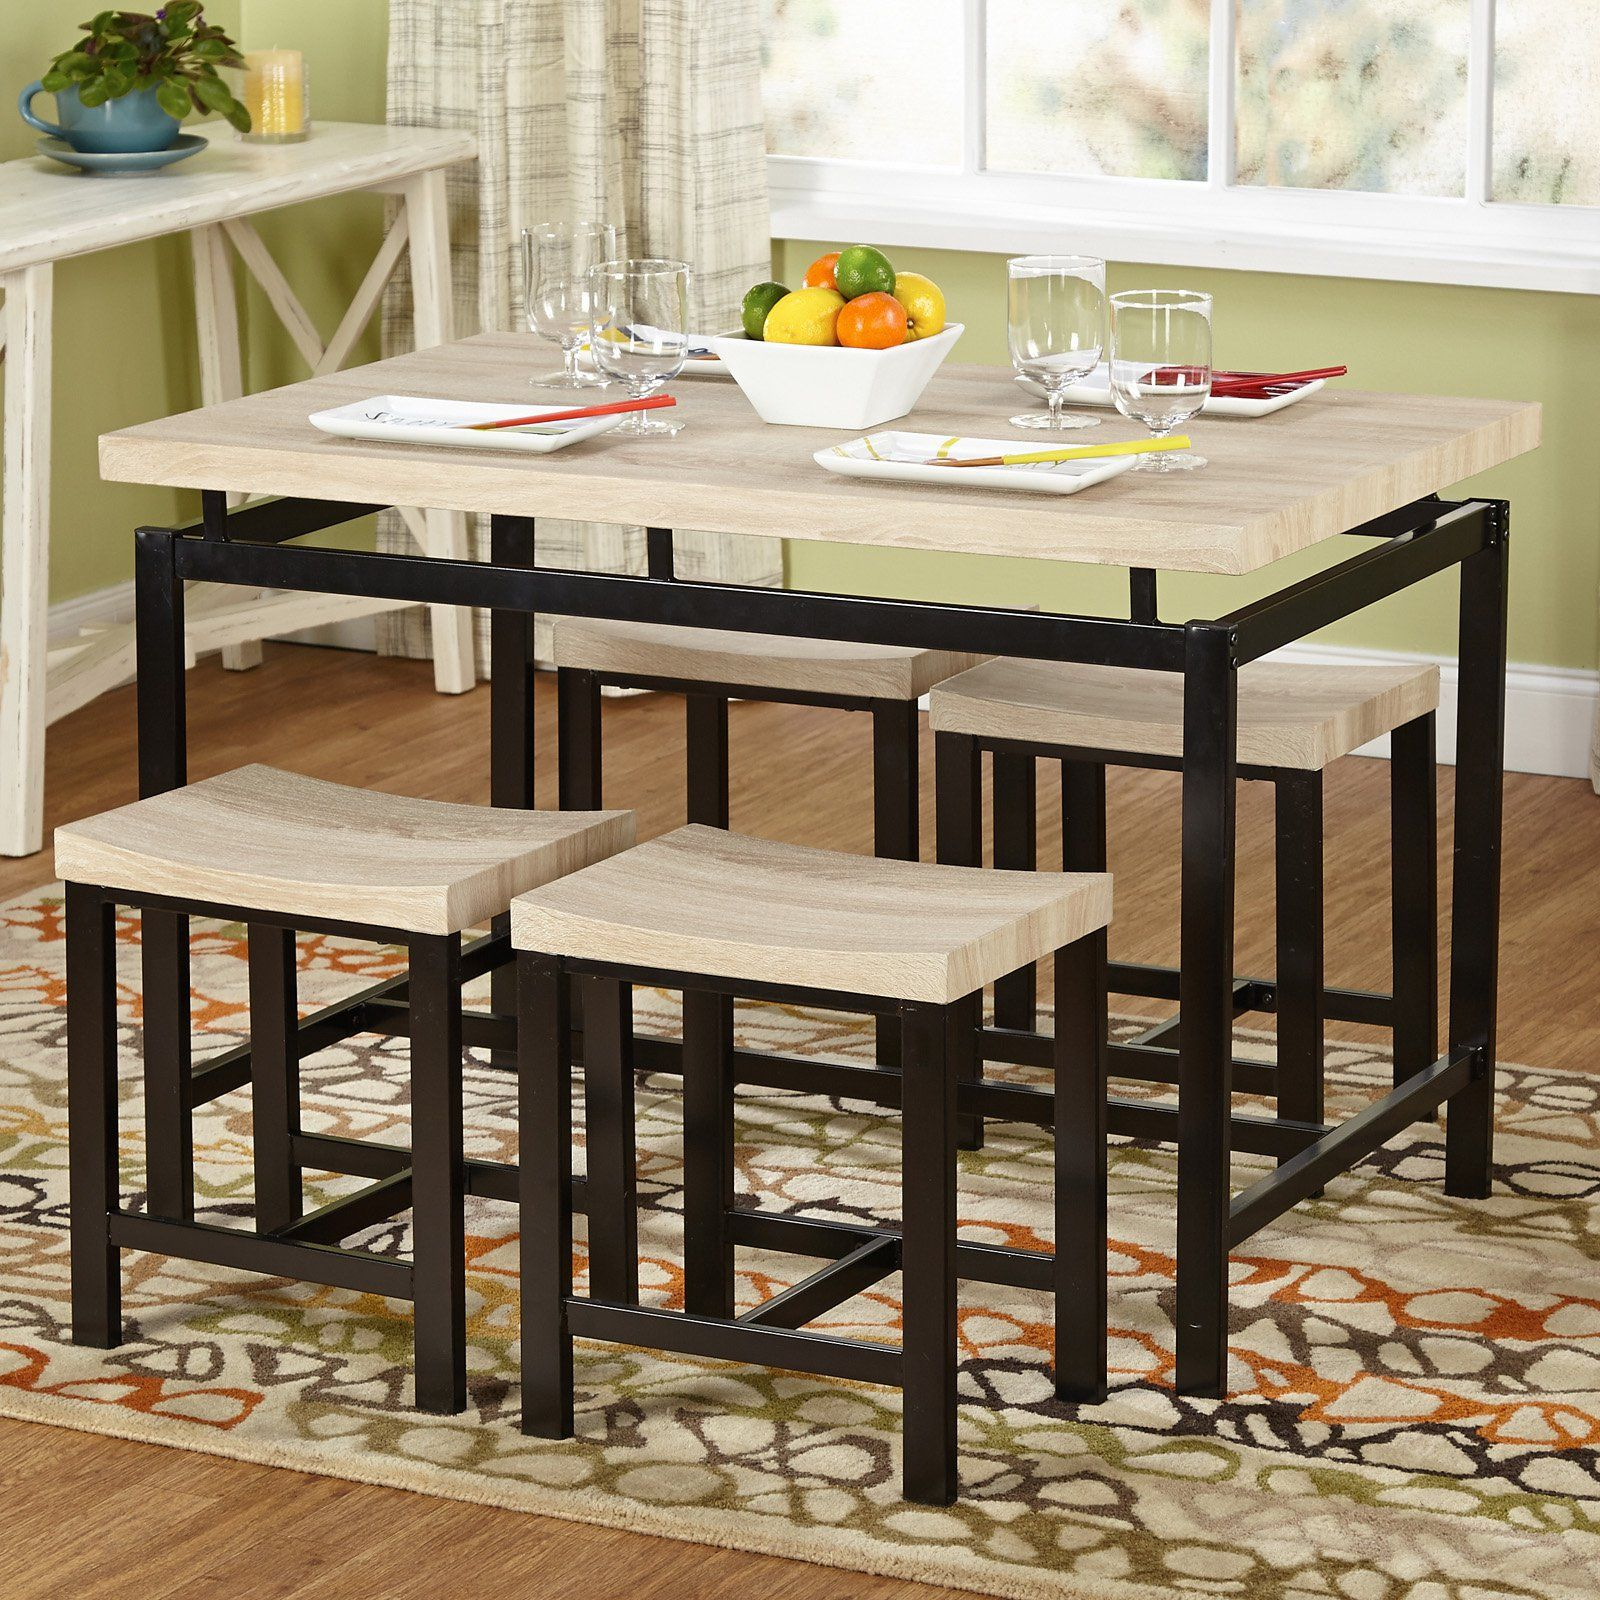 Target Marketing Systems Delano 5 Piece Dining Table Set Modern